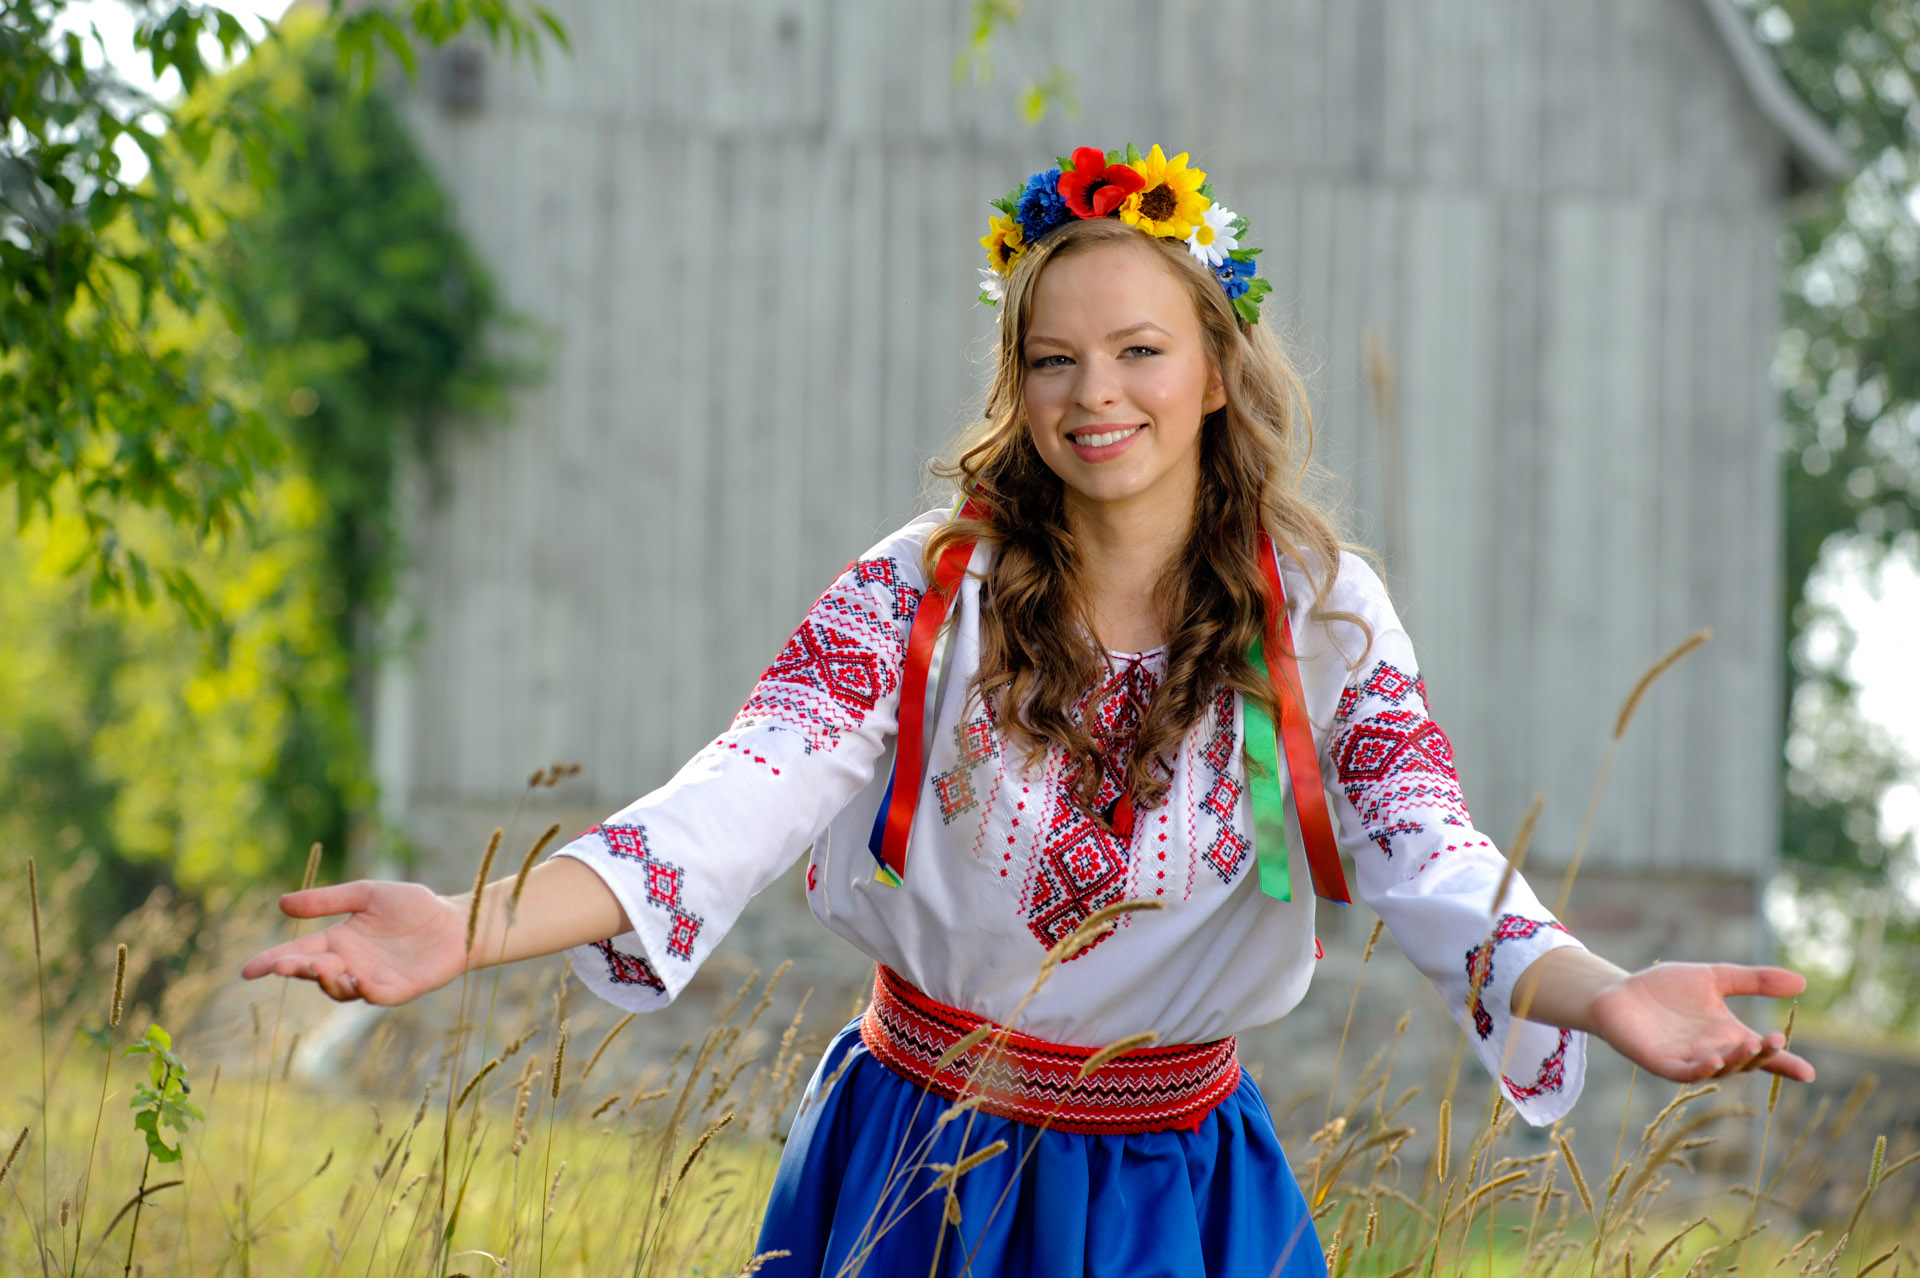 Troy , Michigan senior pictures photo taken of the high school senior doing a traditional Russian dance for her senior pictures in Troy, Michigan.